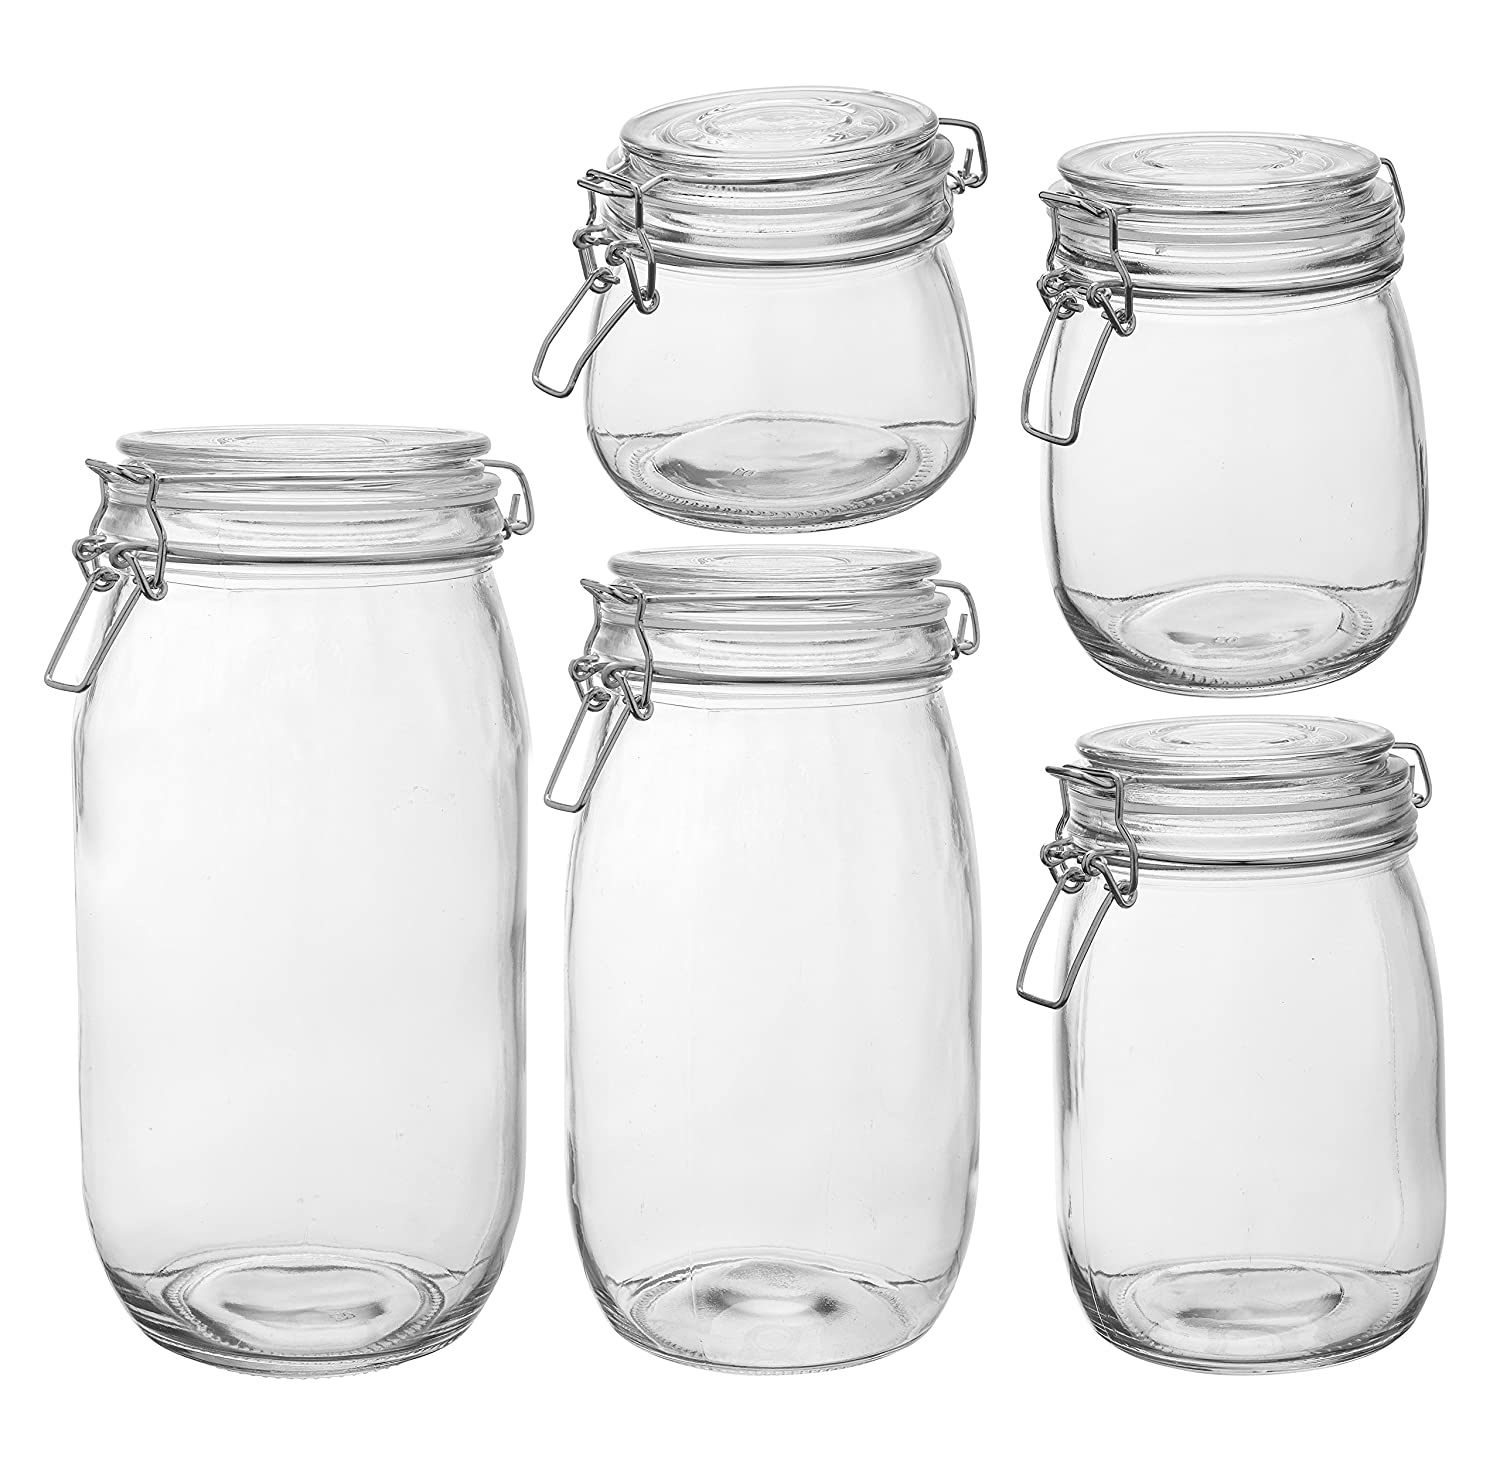 amazon com homequip 5 piece airtight canister set with clip top amazon com homequip 5 piece airtight canister set with clip top lids clear glass kitchen preserving storage jars great dry food pantry containers for